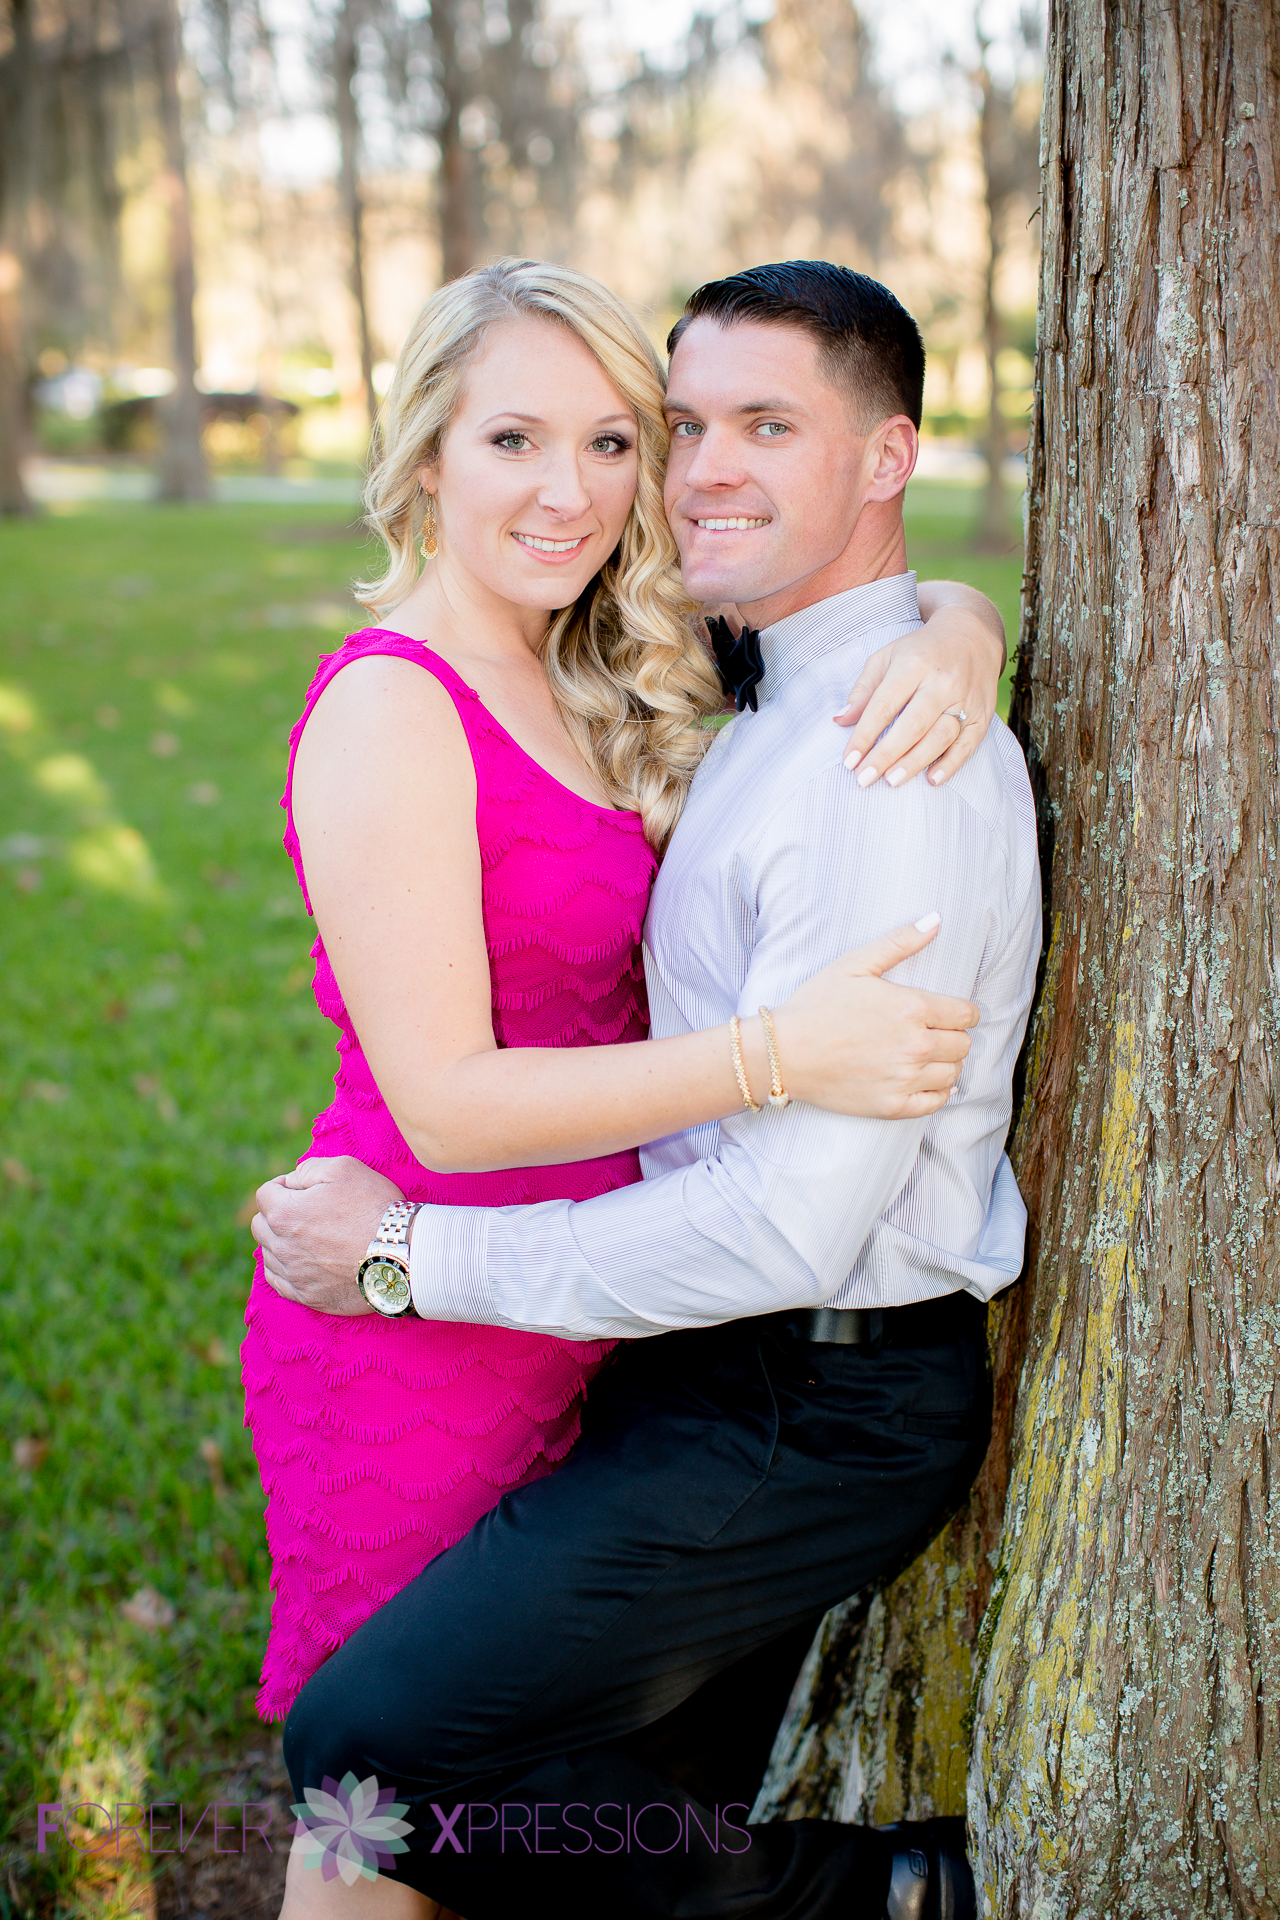 Forever_Xpressions_Engagement_Session_Orlando-1390